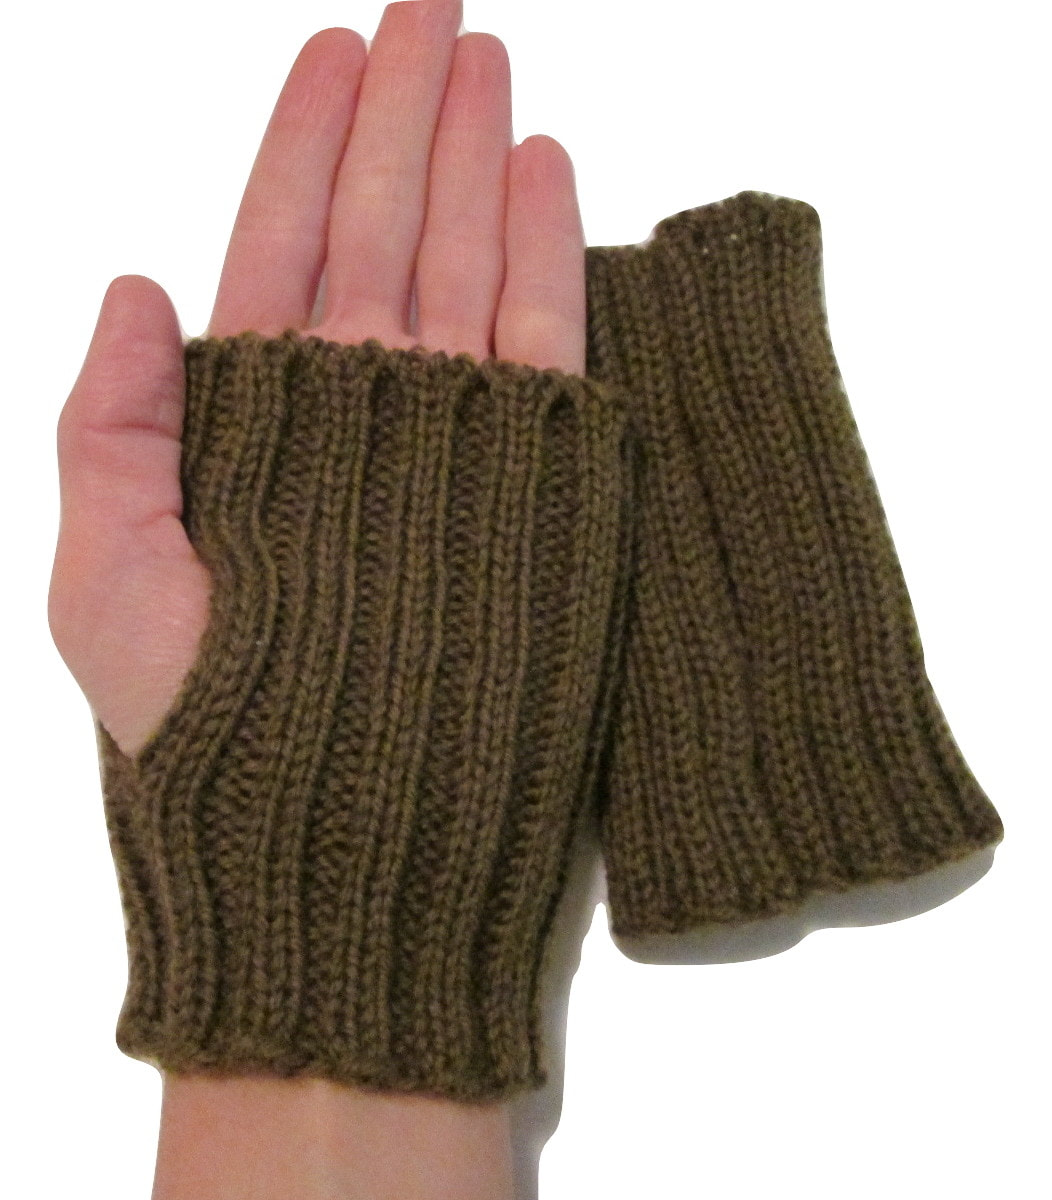 Great War hand warmers